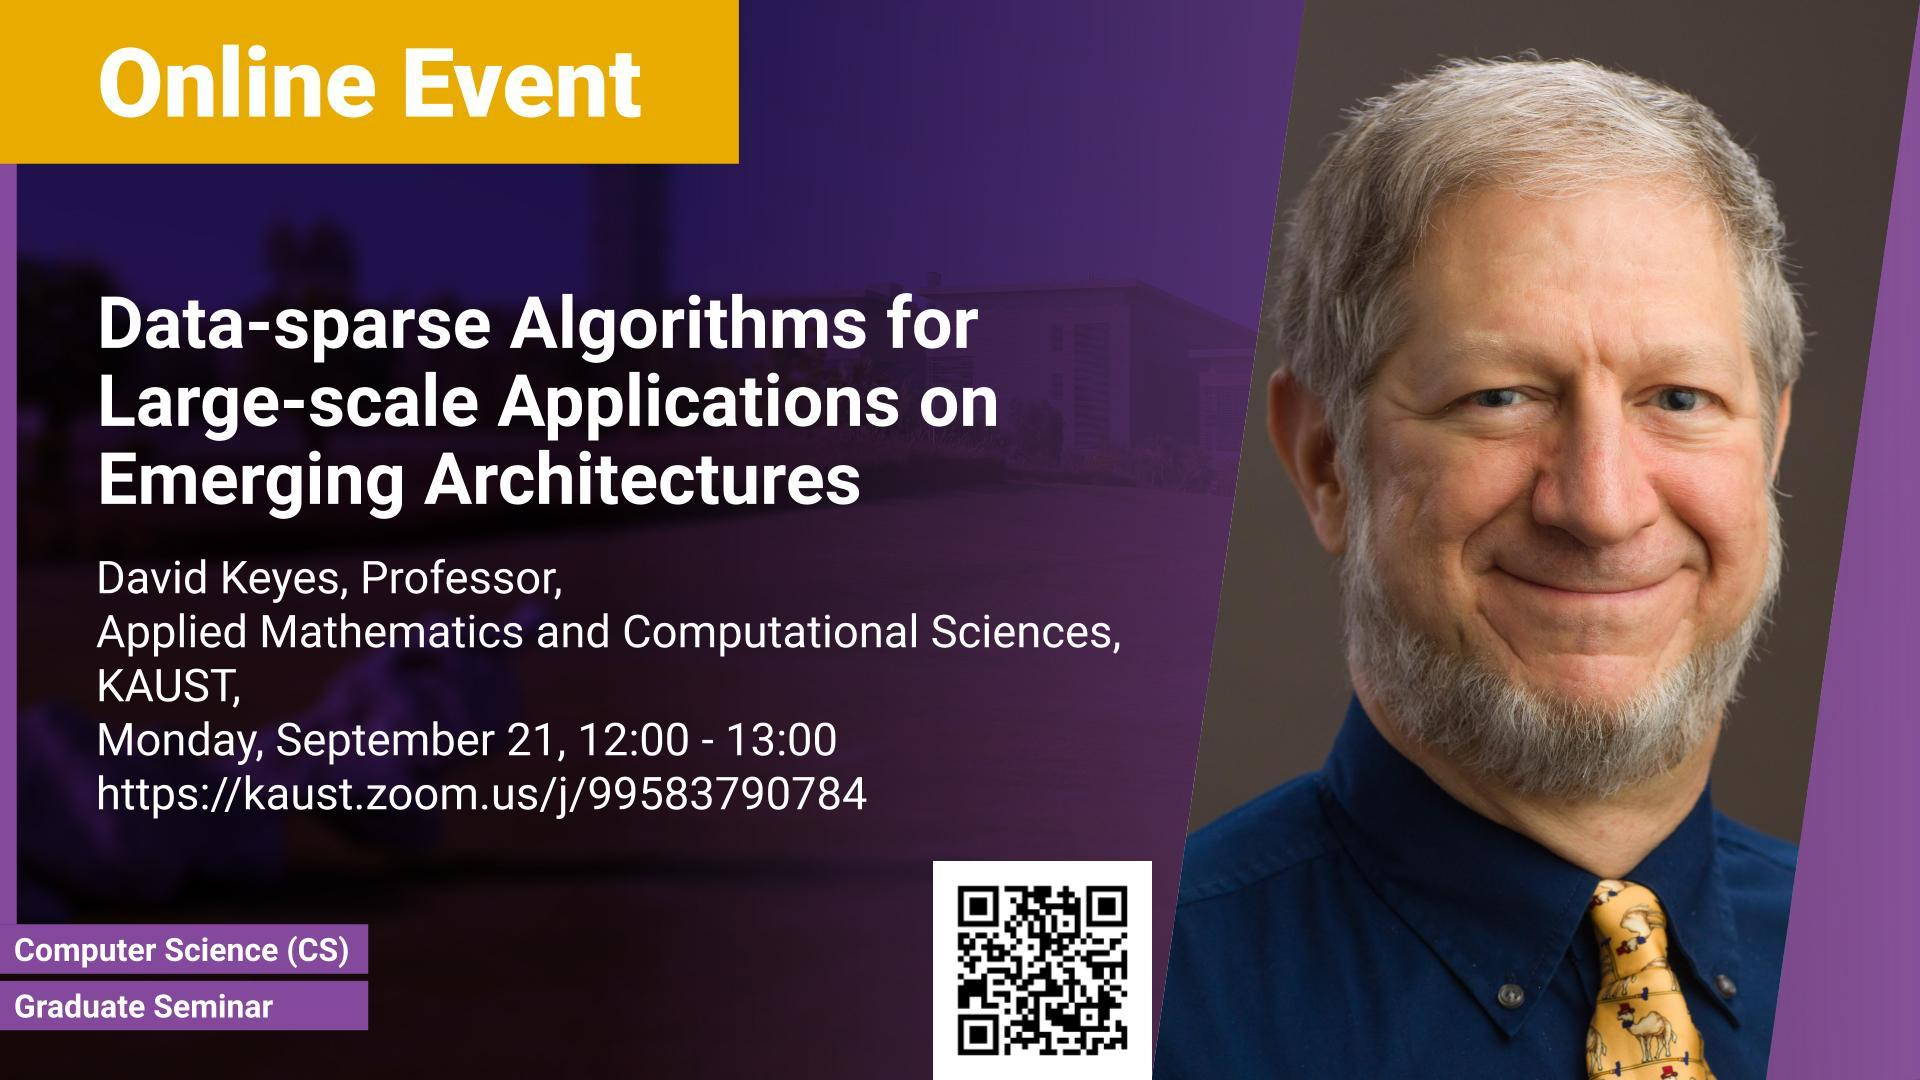 KAUST CEMSE CS Graduate Seminar David Keyes Algorithms for Large scale Applications on Emerging Architectures